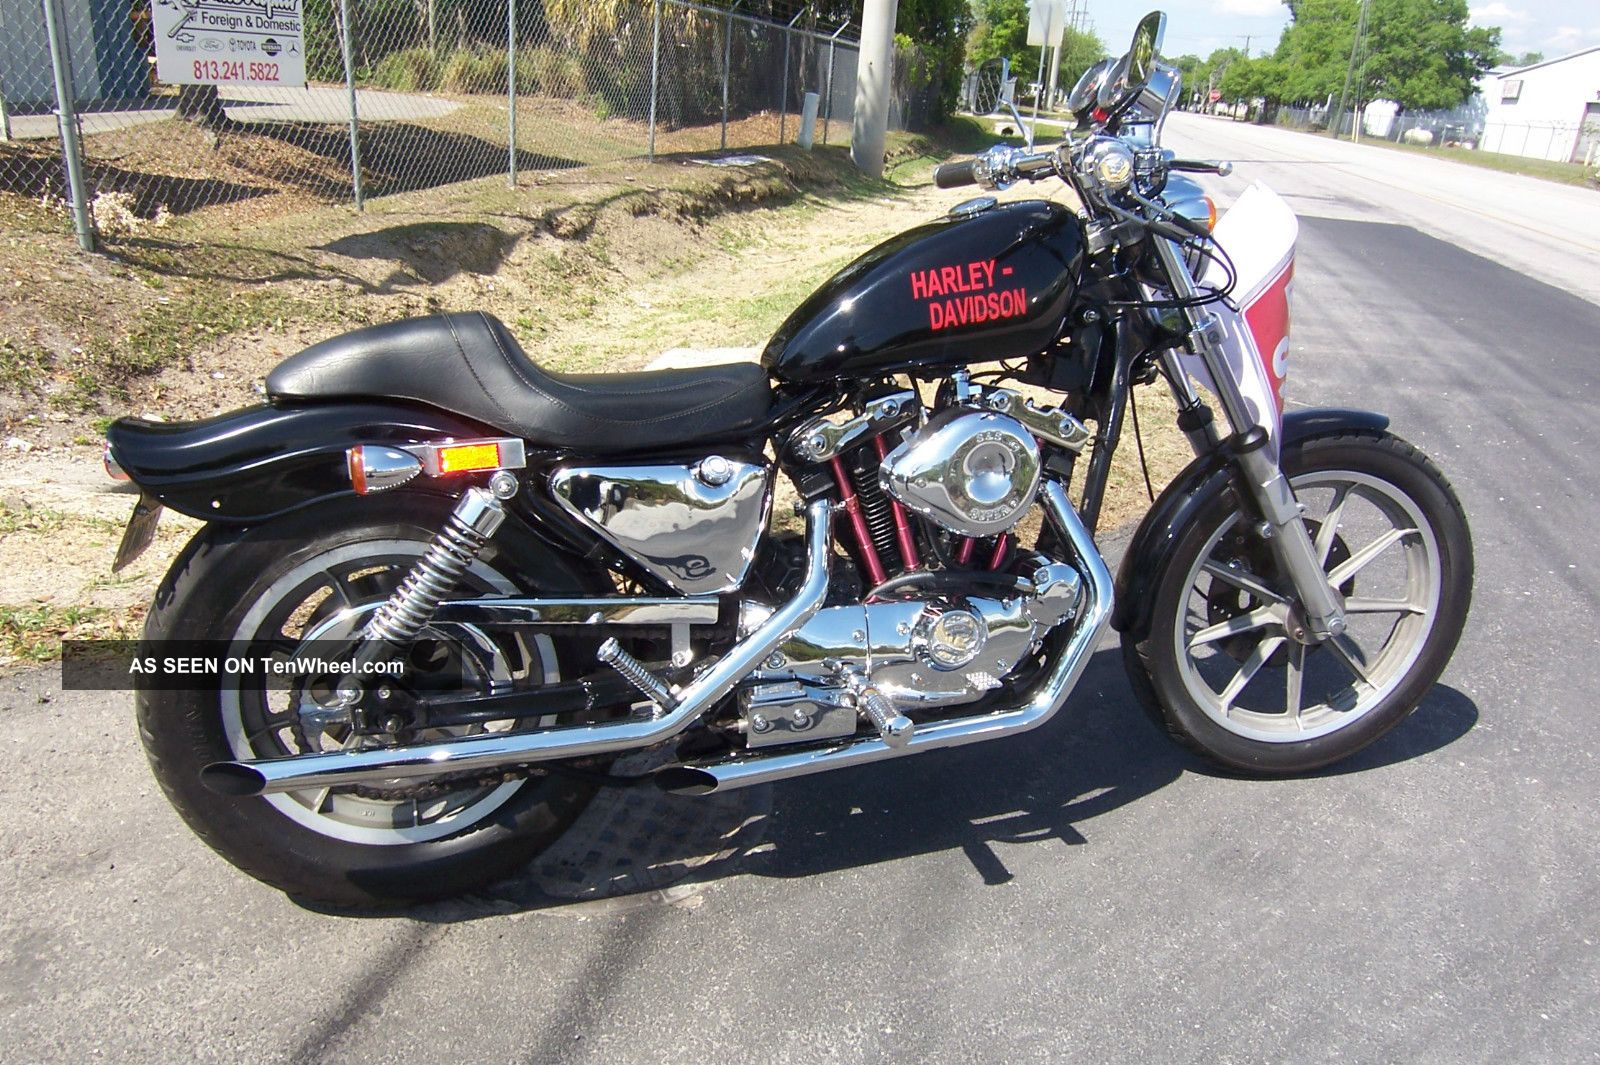 1985 Harley Davidson Sportster Rare E1985 1000cc Sportster - 1 Of 1500 Made Sportster photo